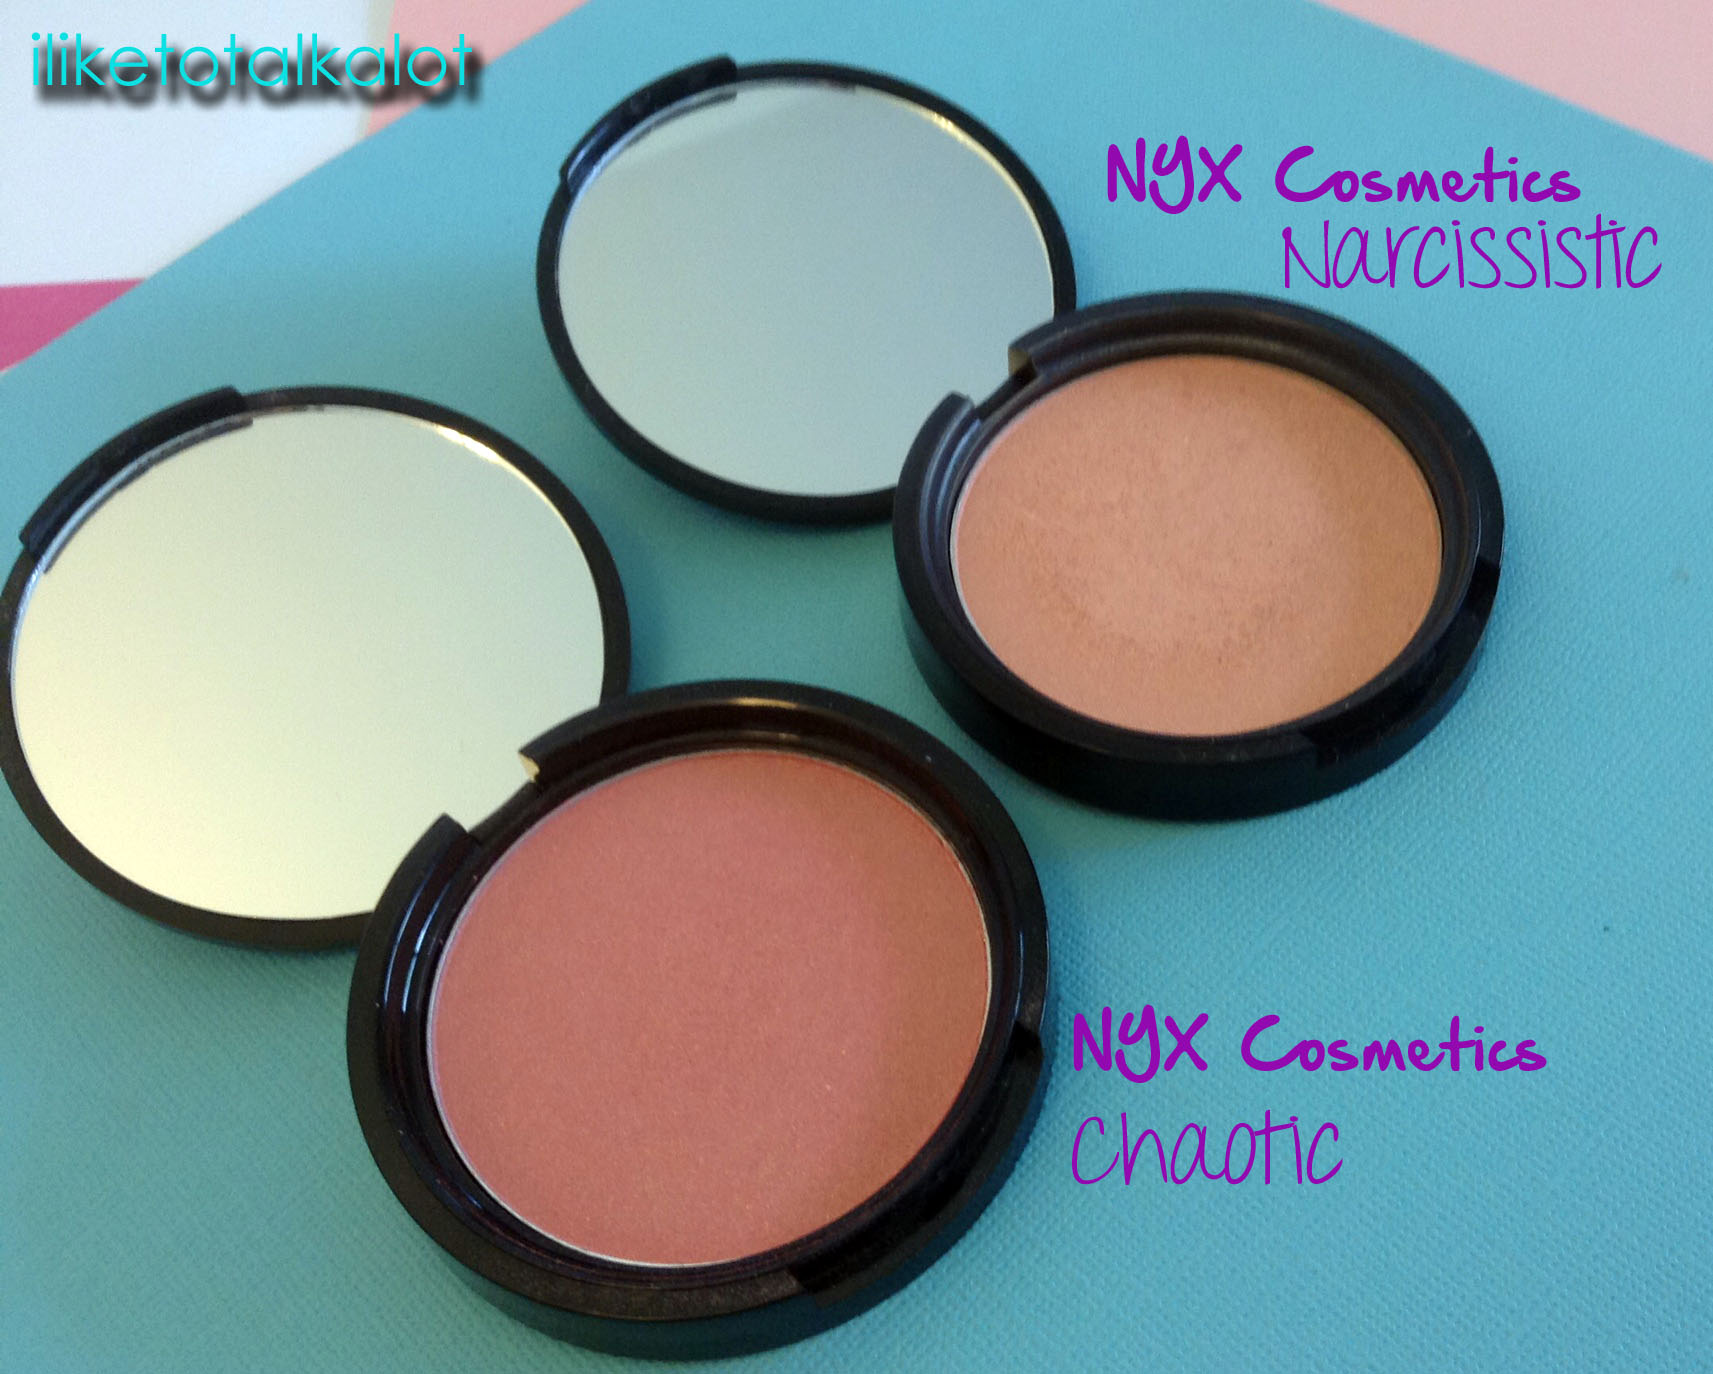 Favorites From NYX Cosmetics! - iliketotalkalotiliketotalkalot Nyx Narcissistic